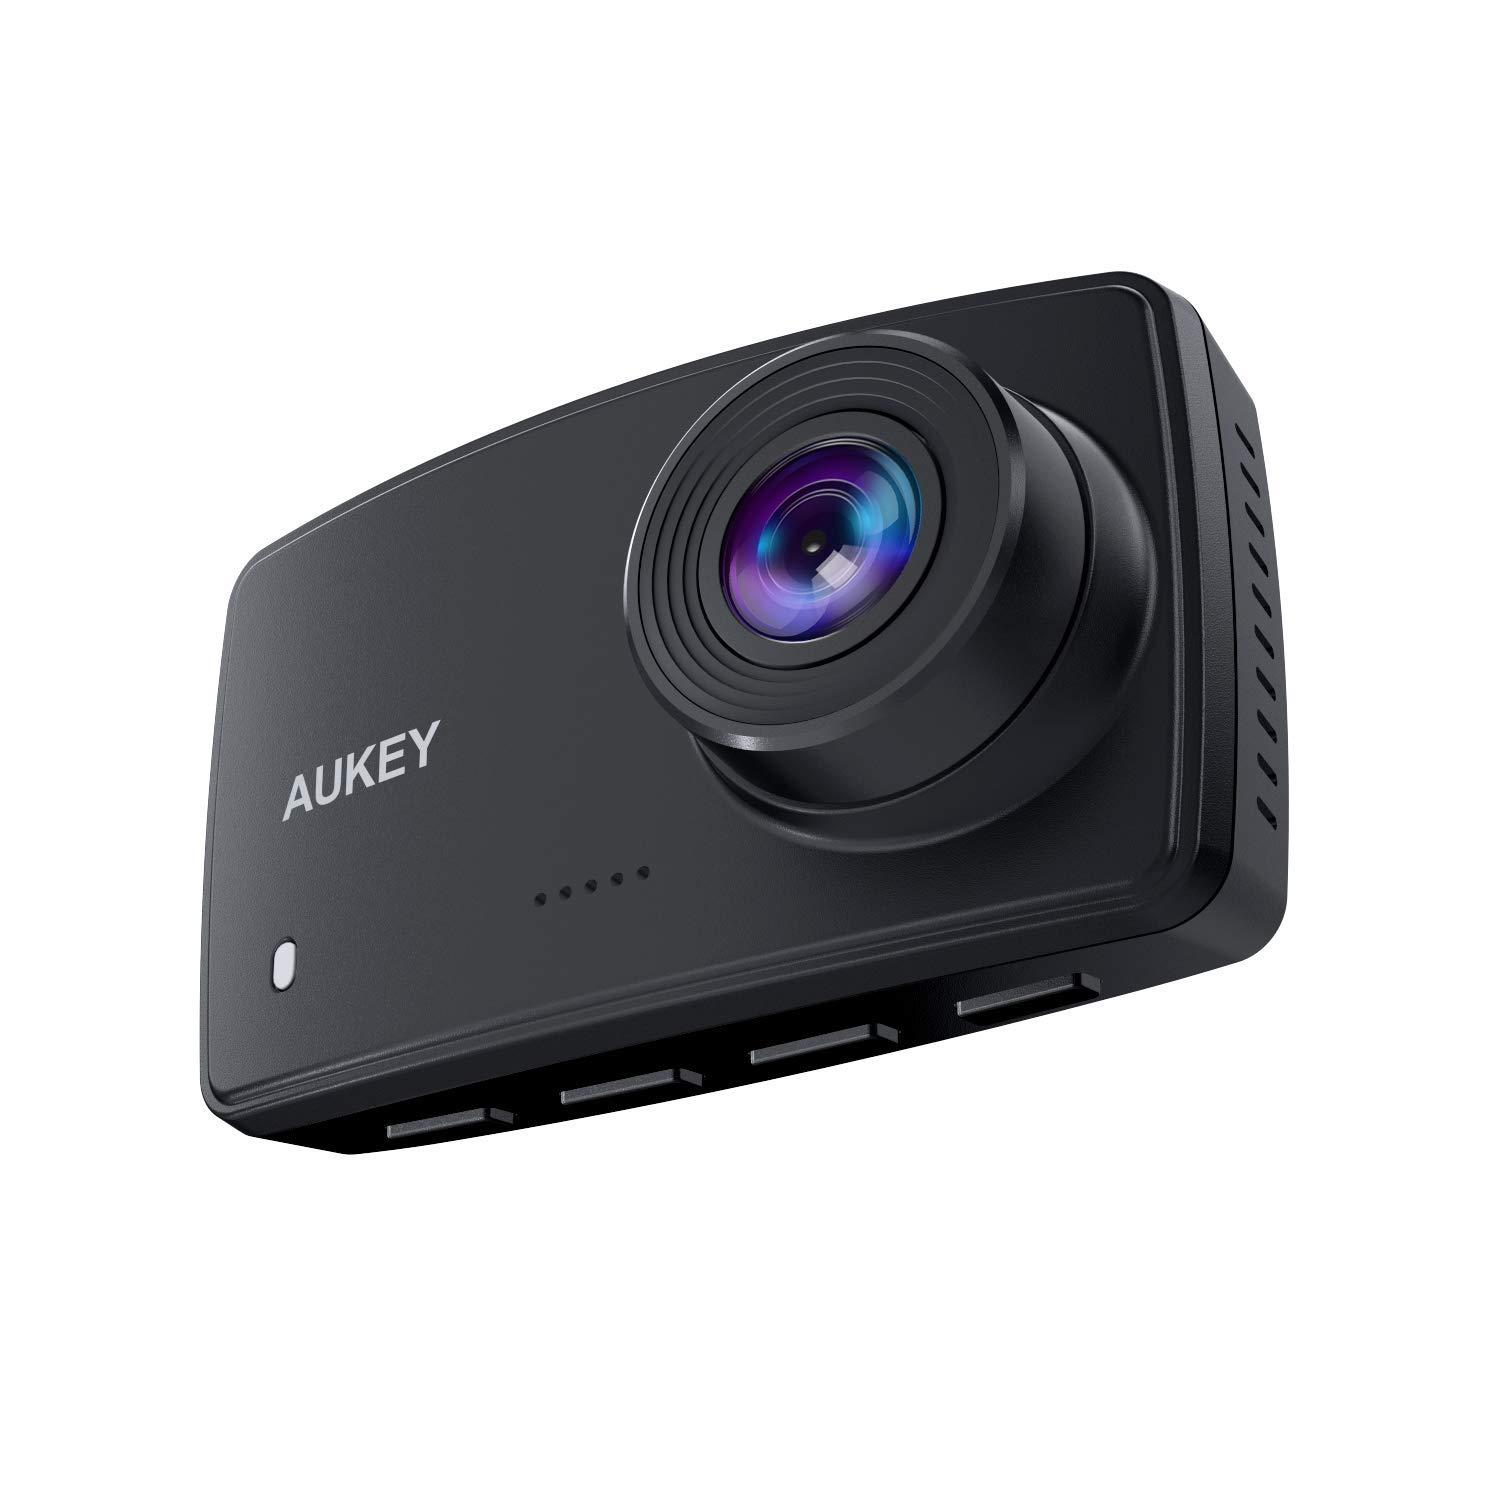 Aukey 1080p Dashcam with Night Vision